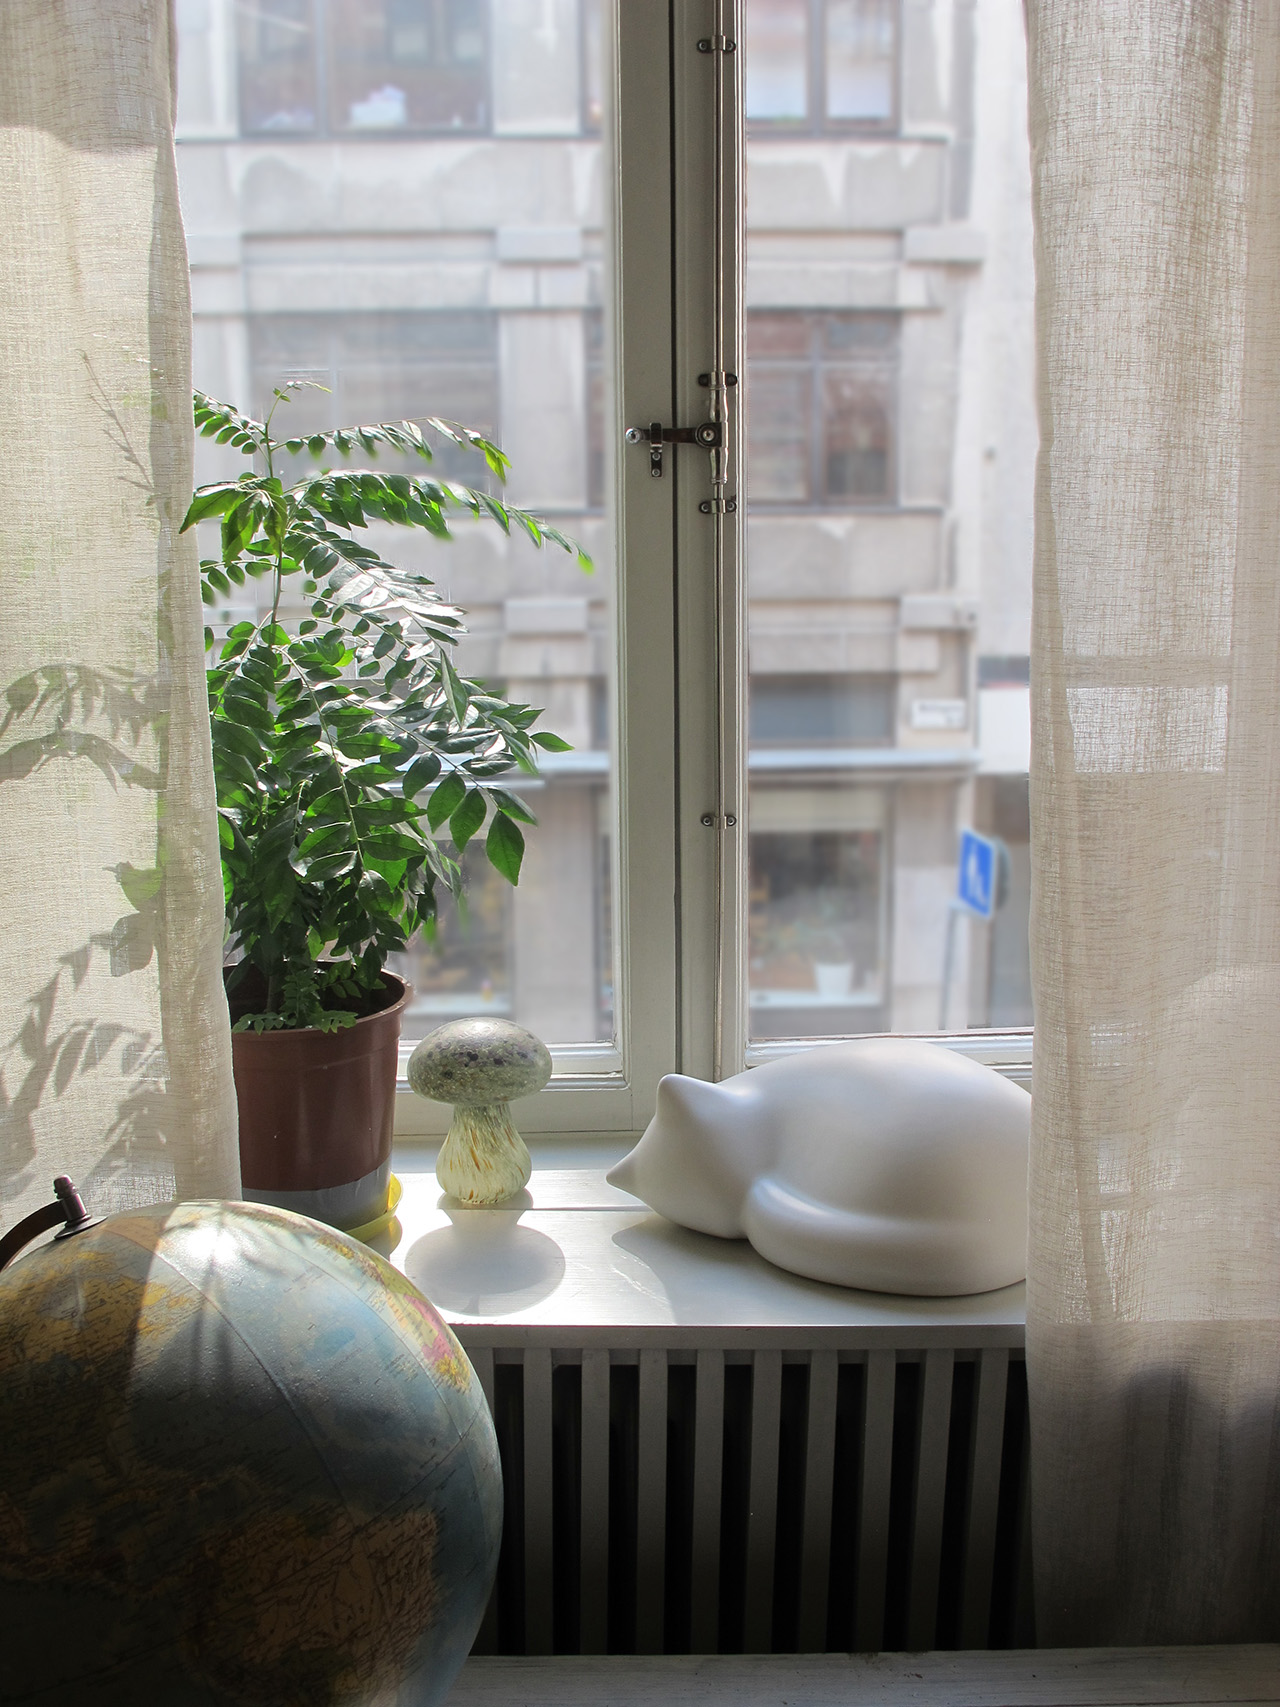 By the window quietly observing the city's streets.